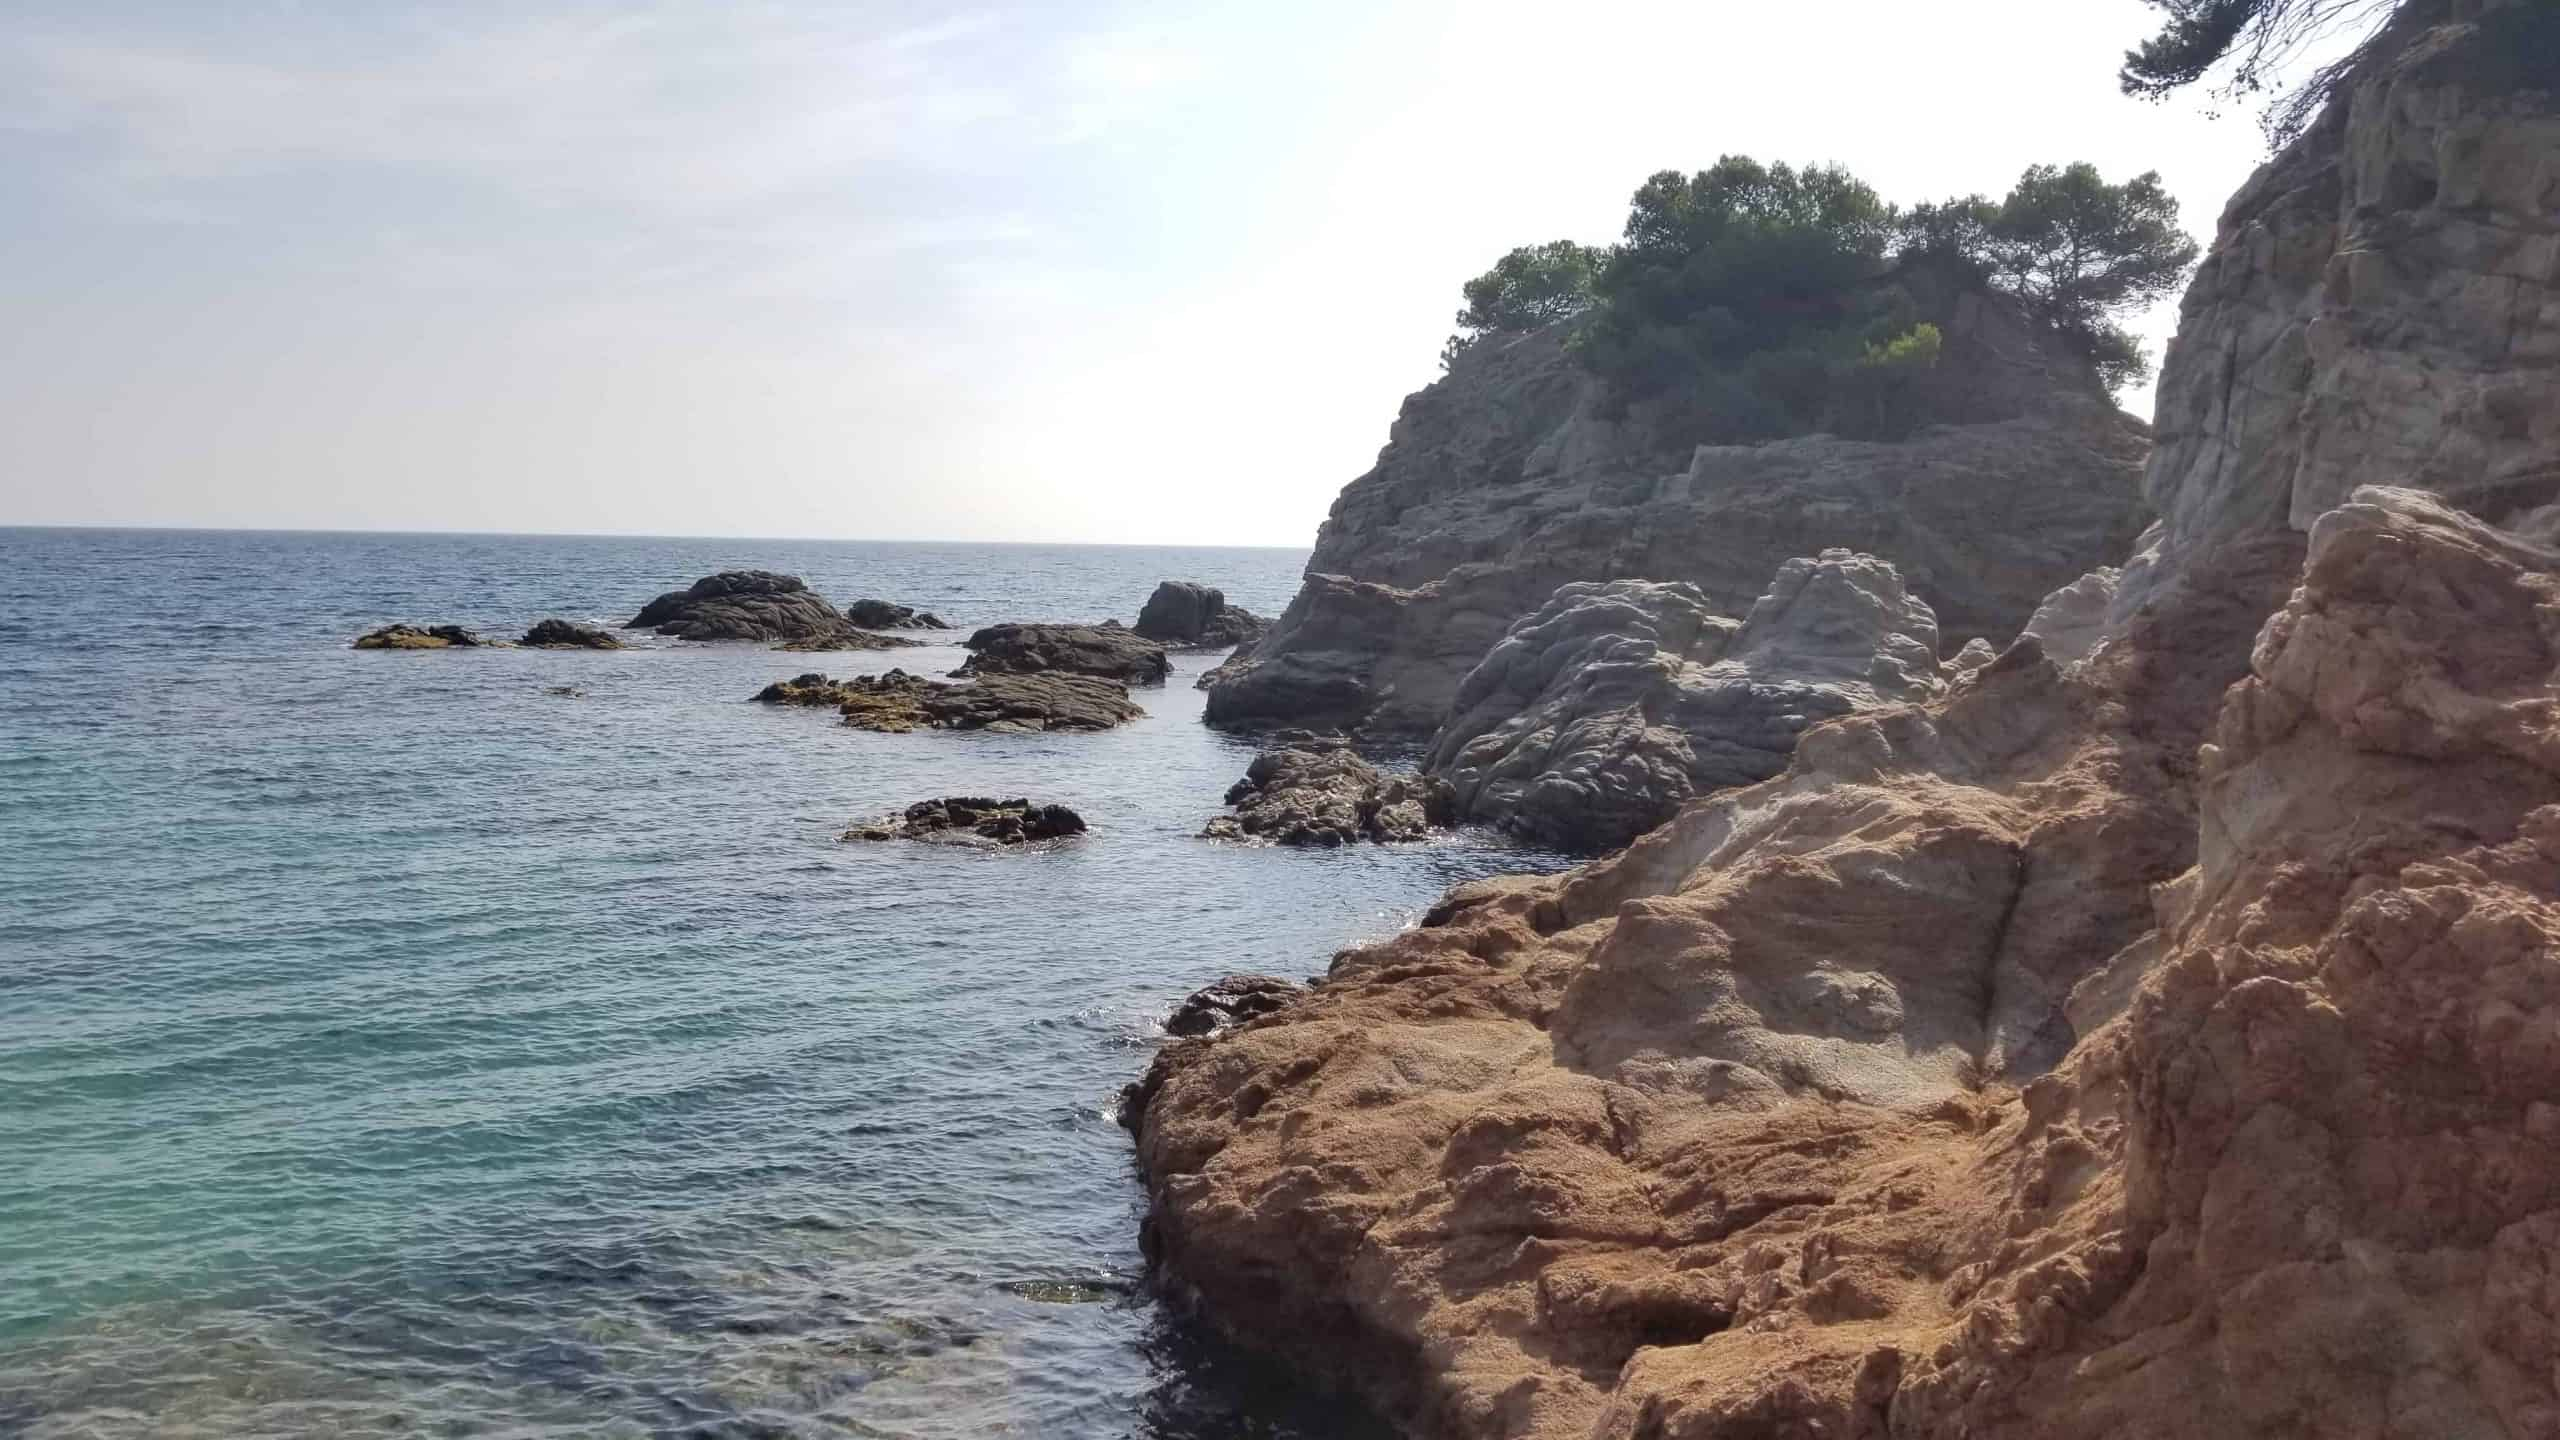 Diving area near Platja de Fenals.